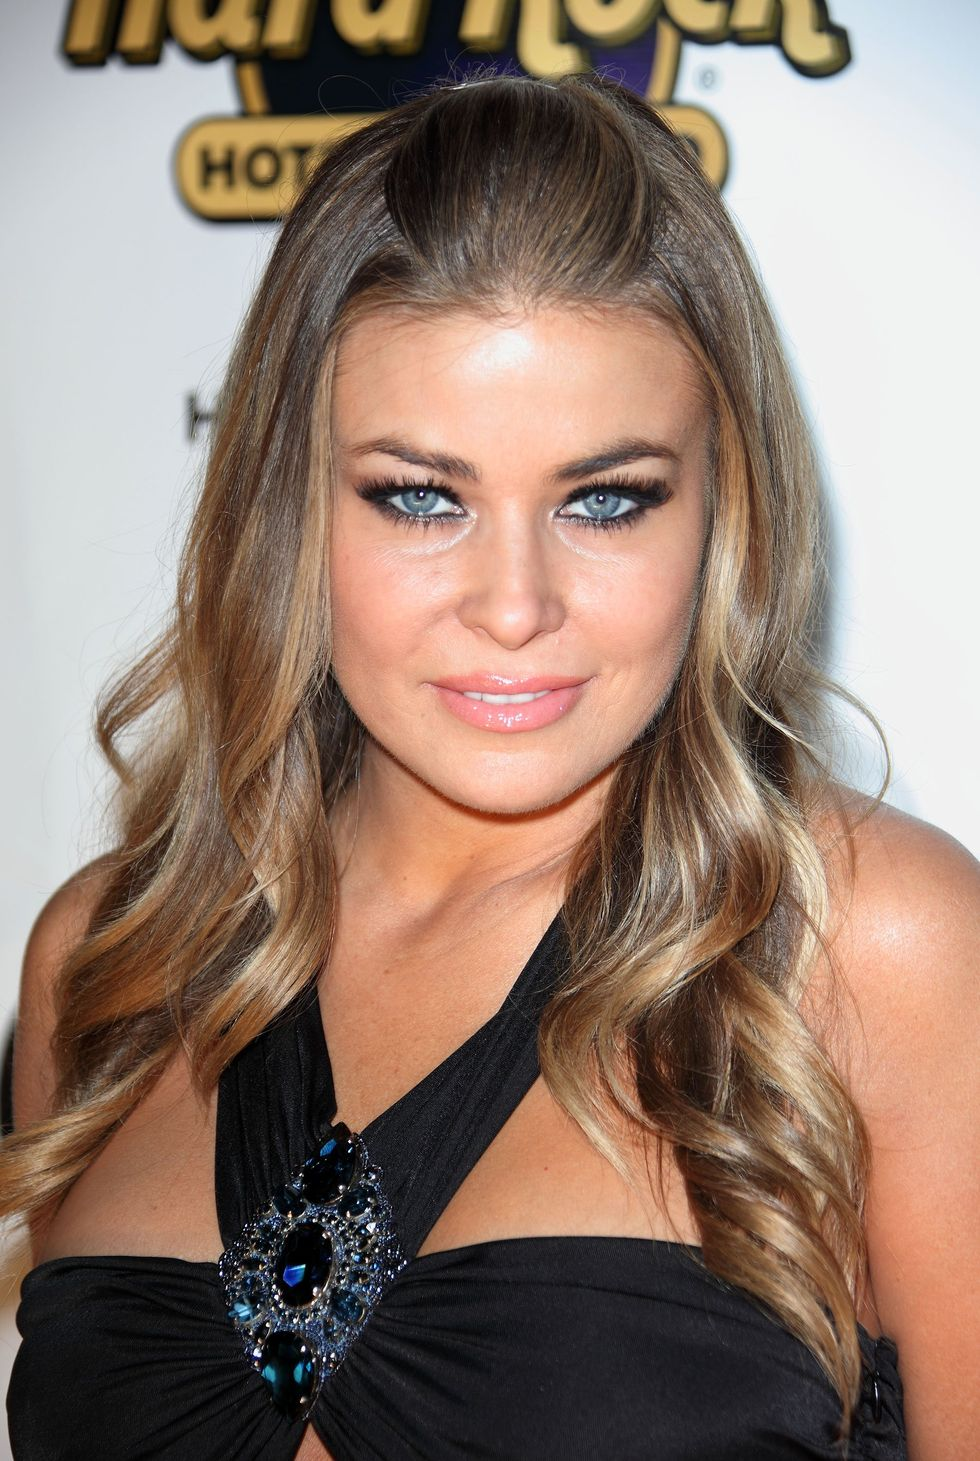 carmen-electra-pangaea-nightclub-4th-anniversary-party-01